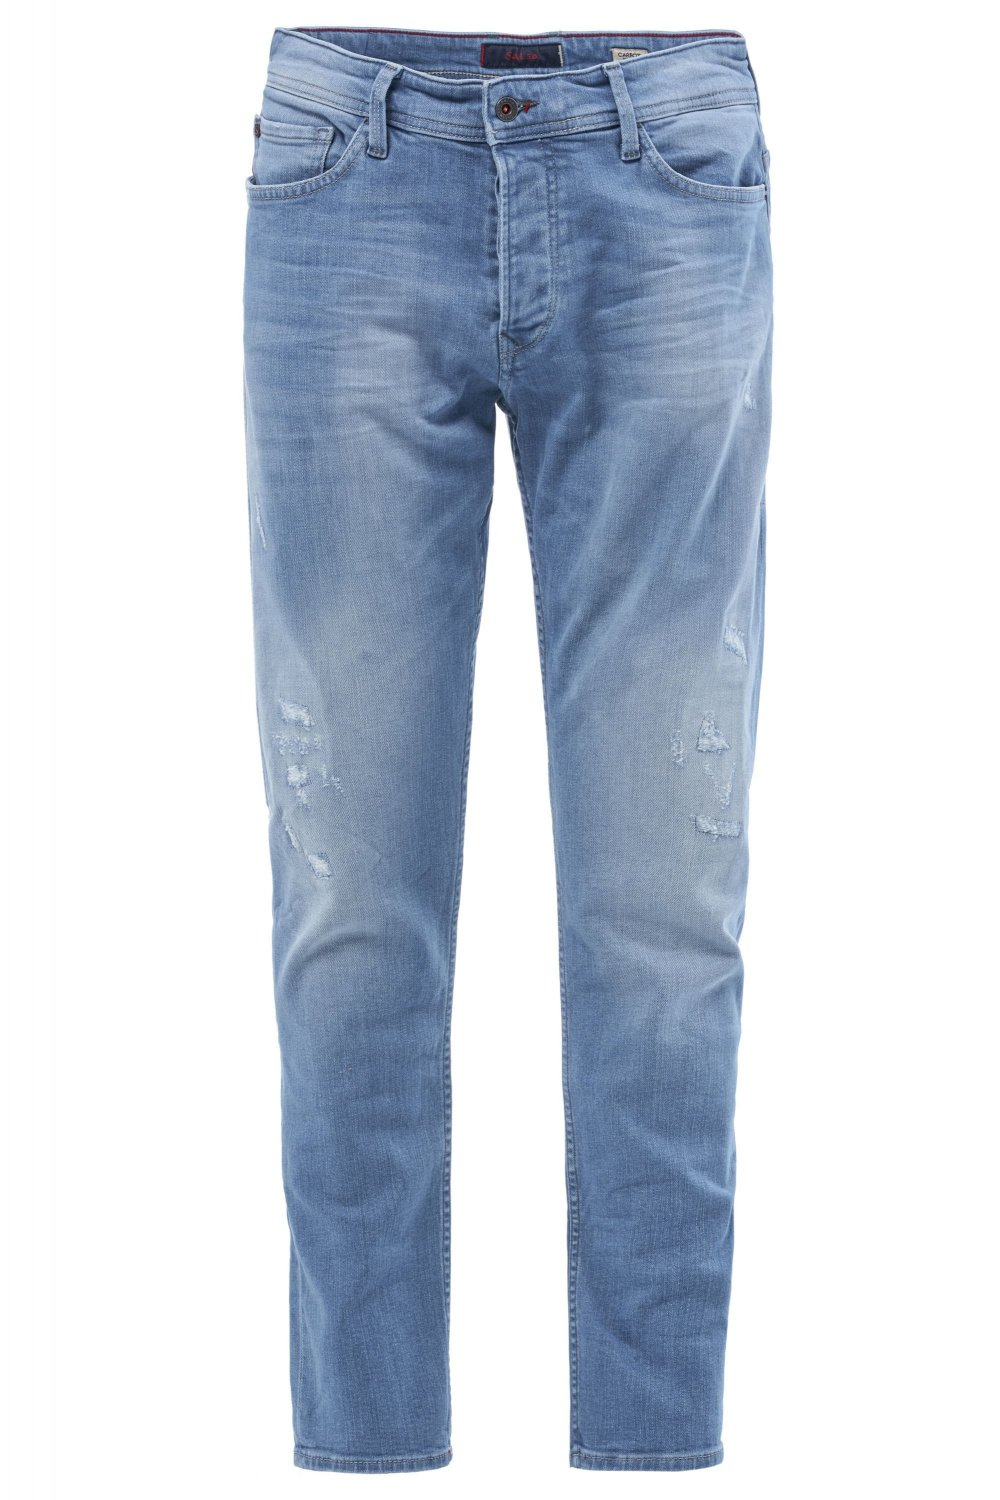 Slender slim premium wash jeans with rips - Salsa